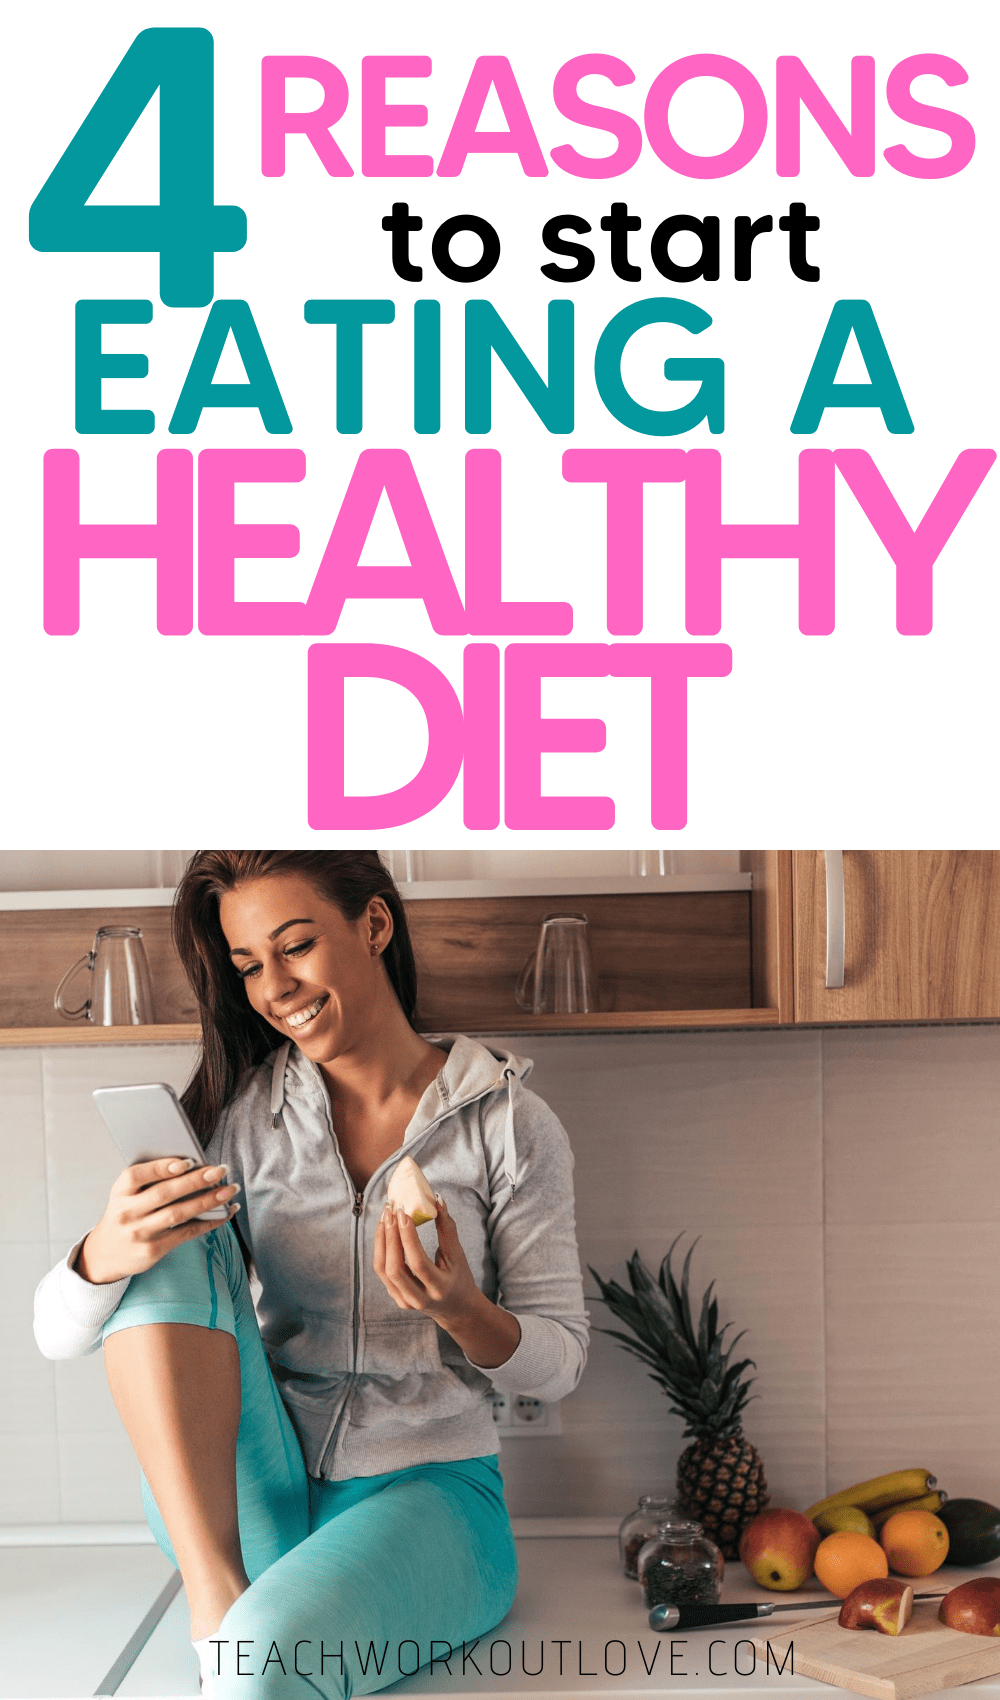 Many of us have a poor diet. Here's some motivational facts on how eating a healthy diet will impact your life for the better.